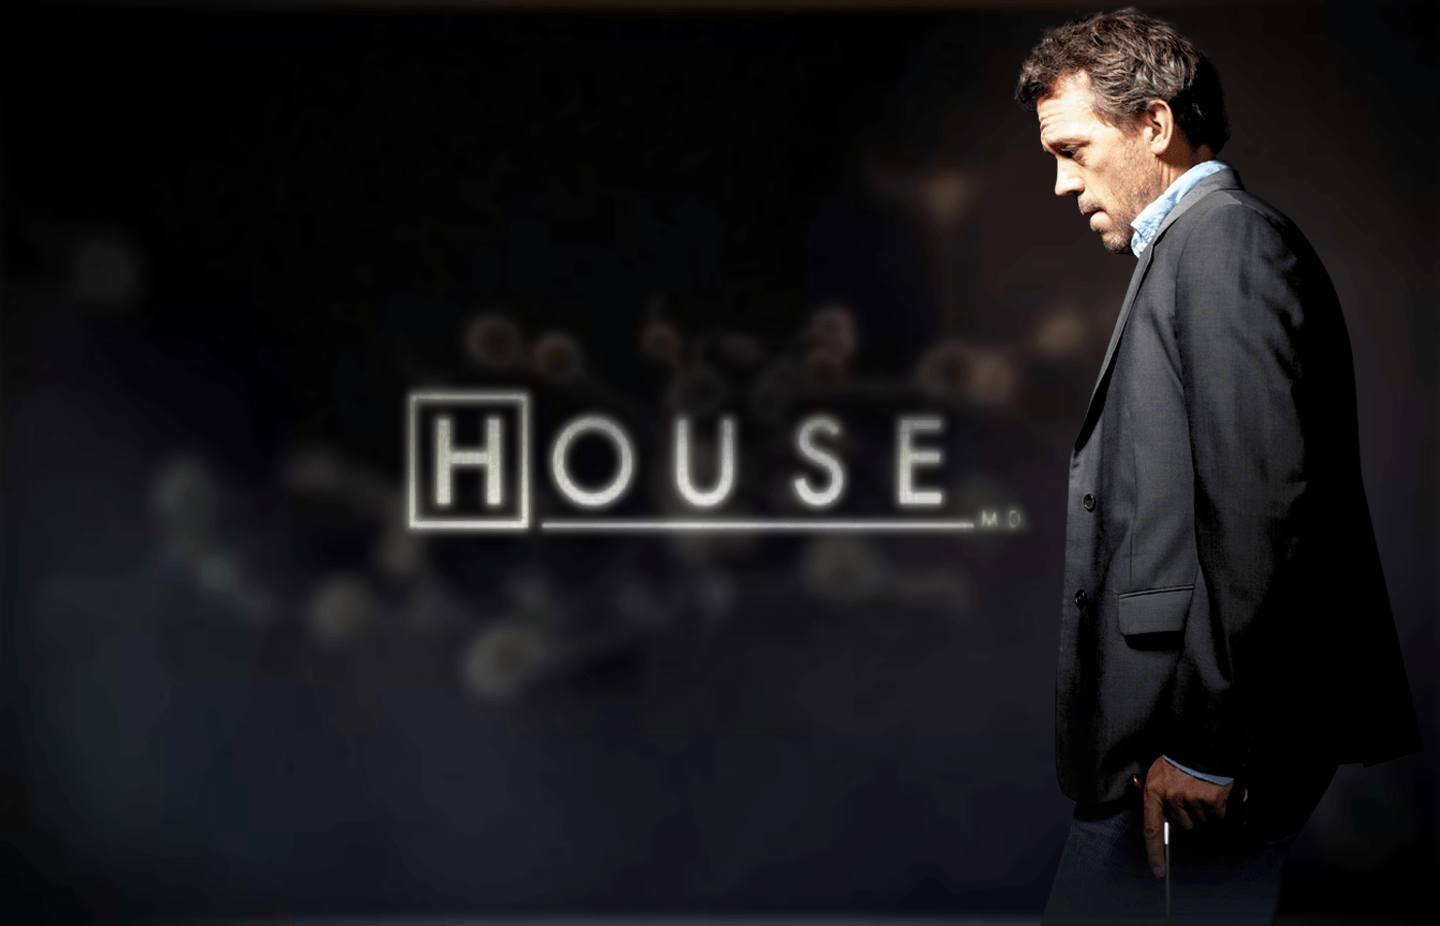 House md wallpapers wallpaper cave - House of tv show ...